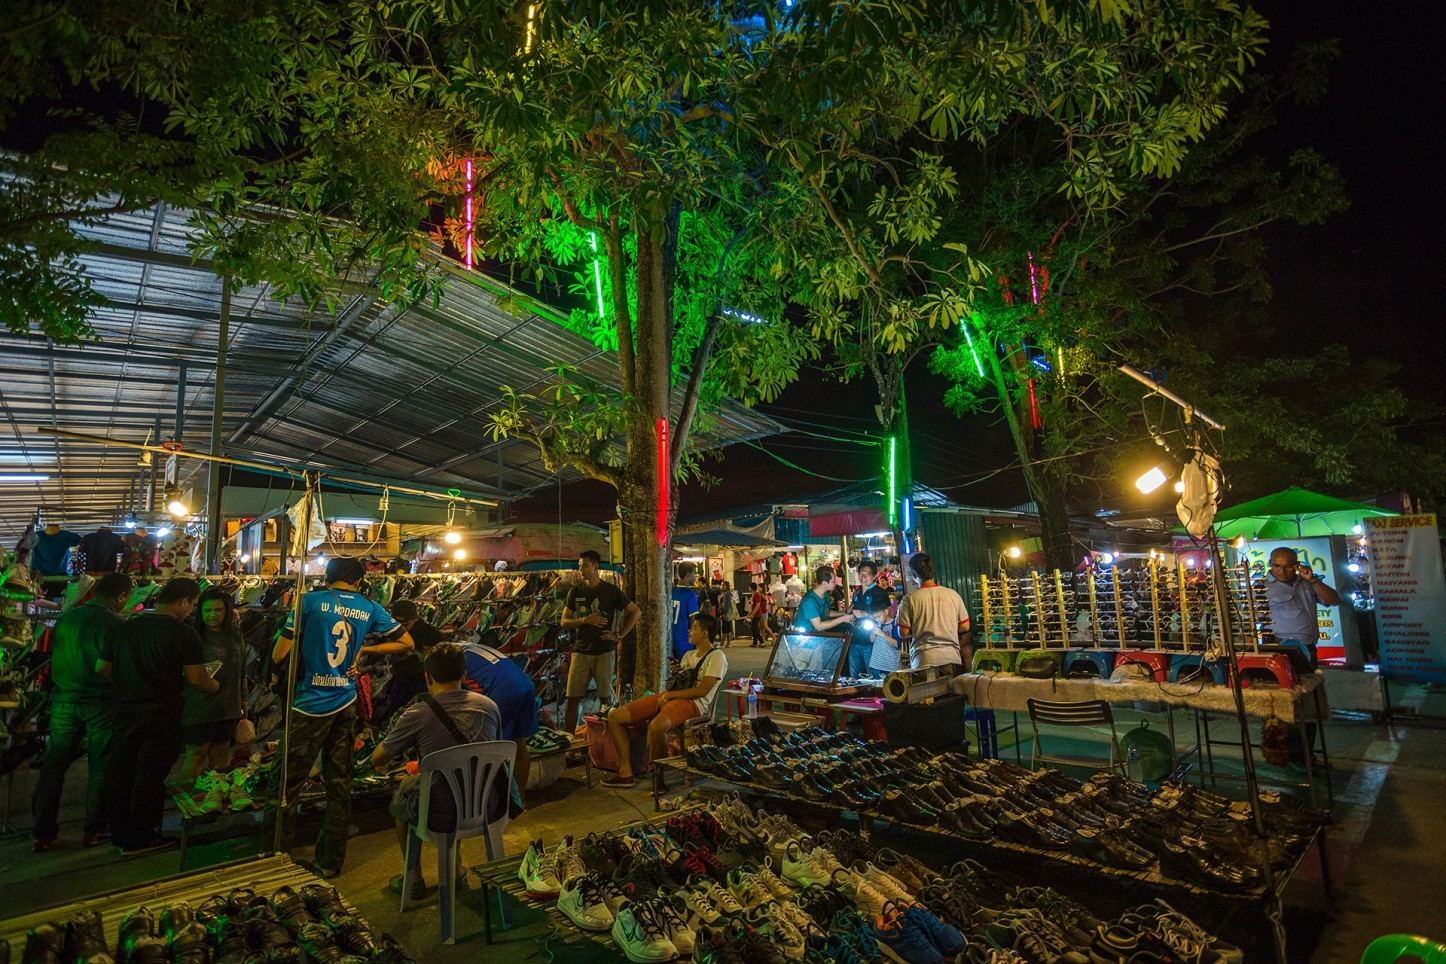 Weekend Market In Phuket , Chao Fa West road